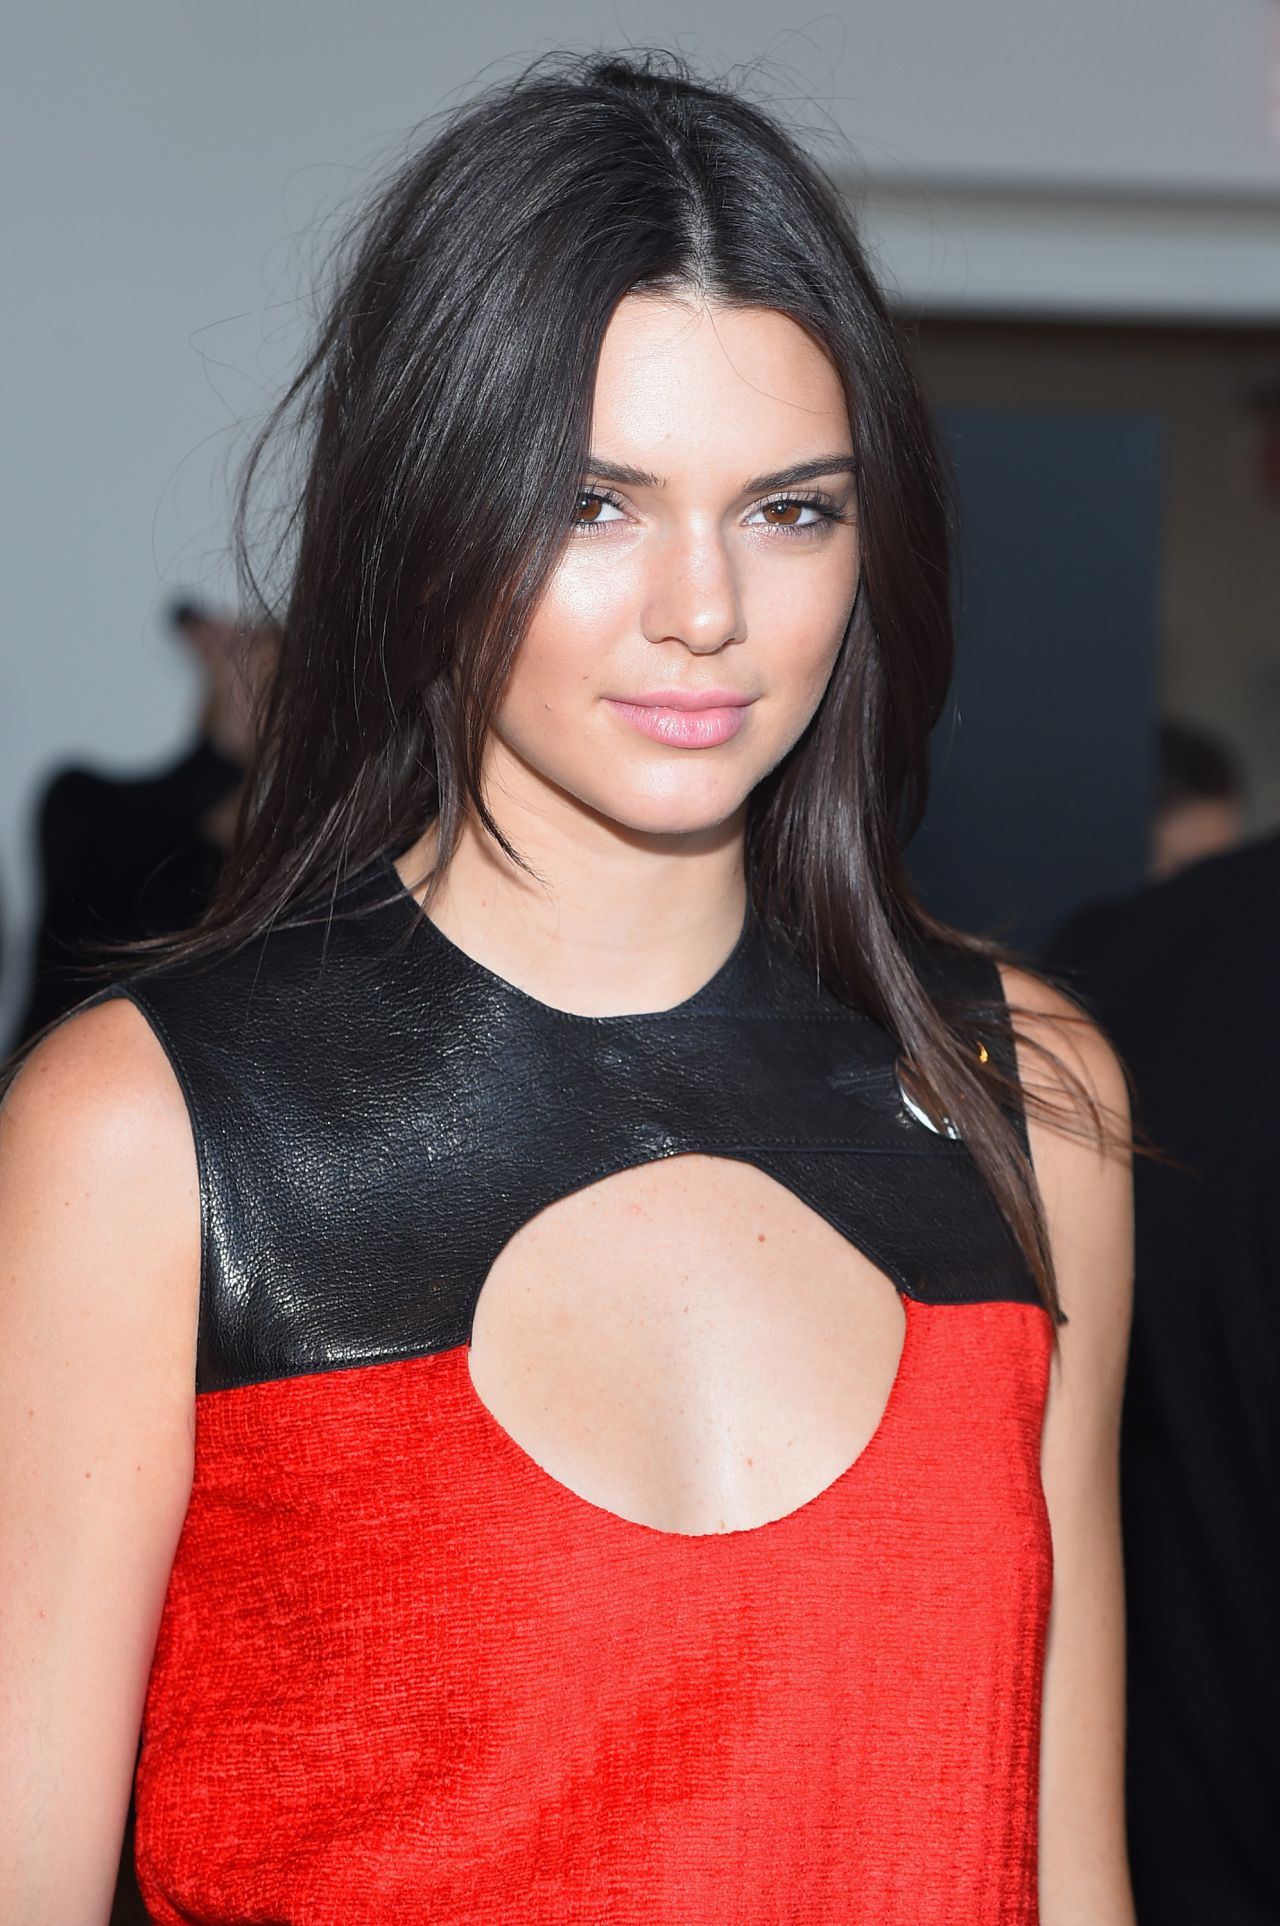 kendall-jenner-recortes